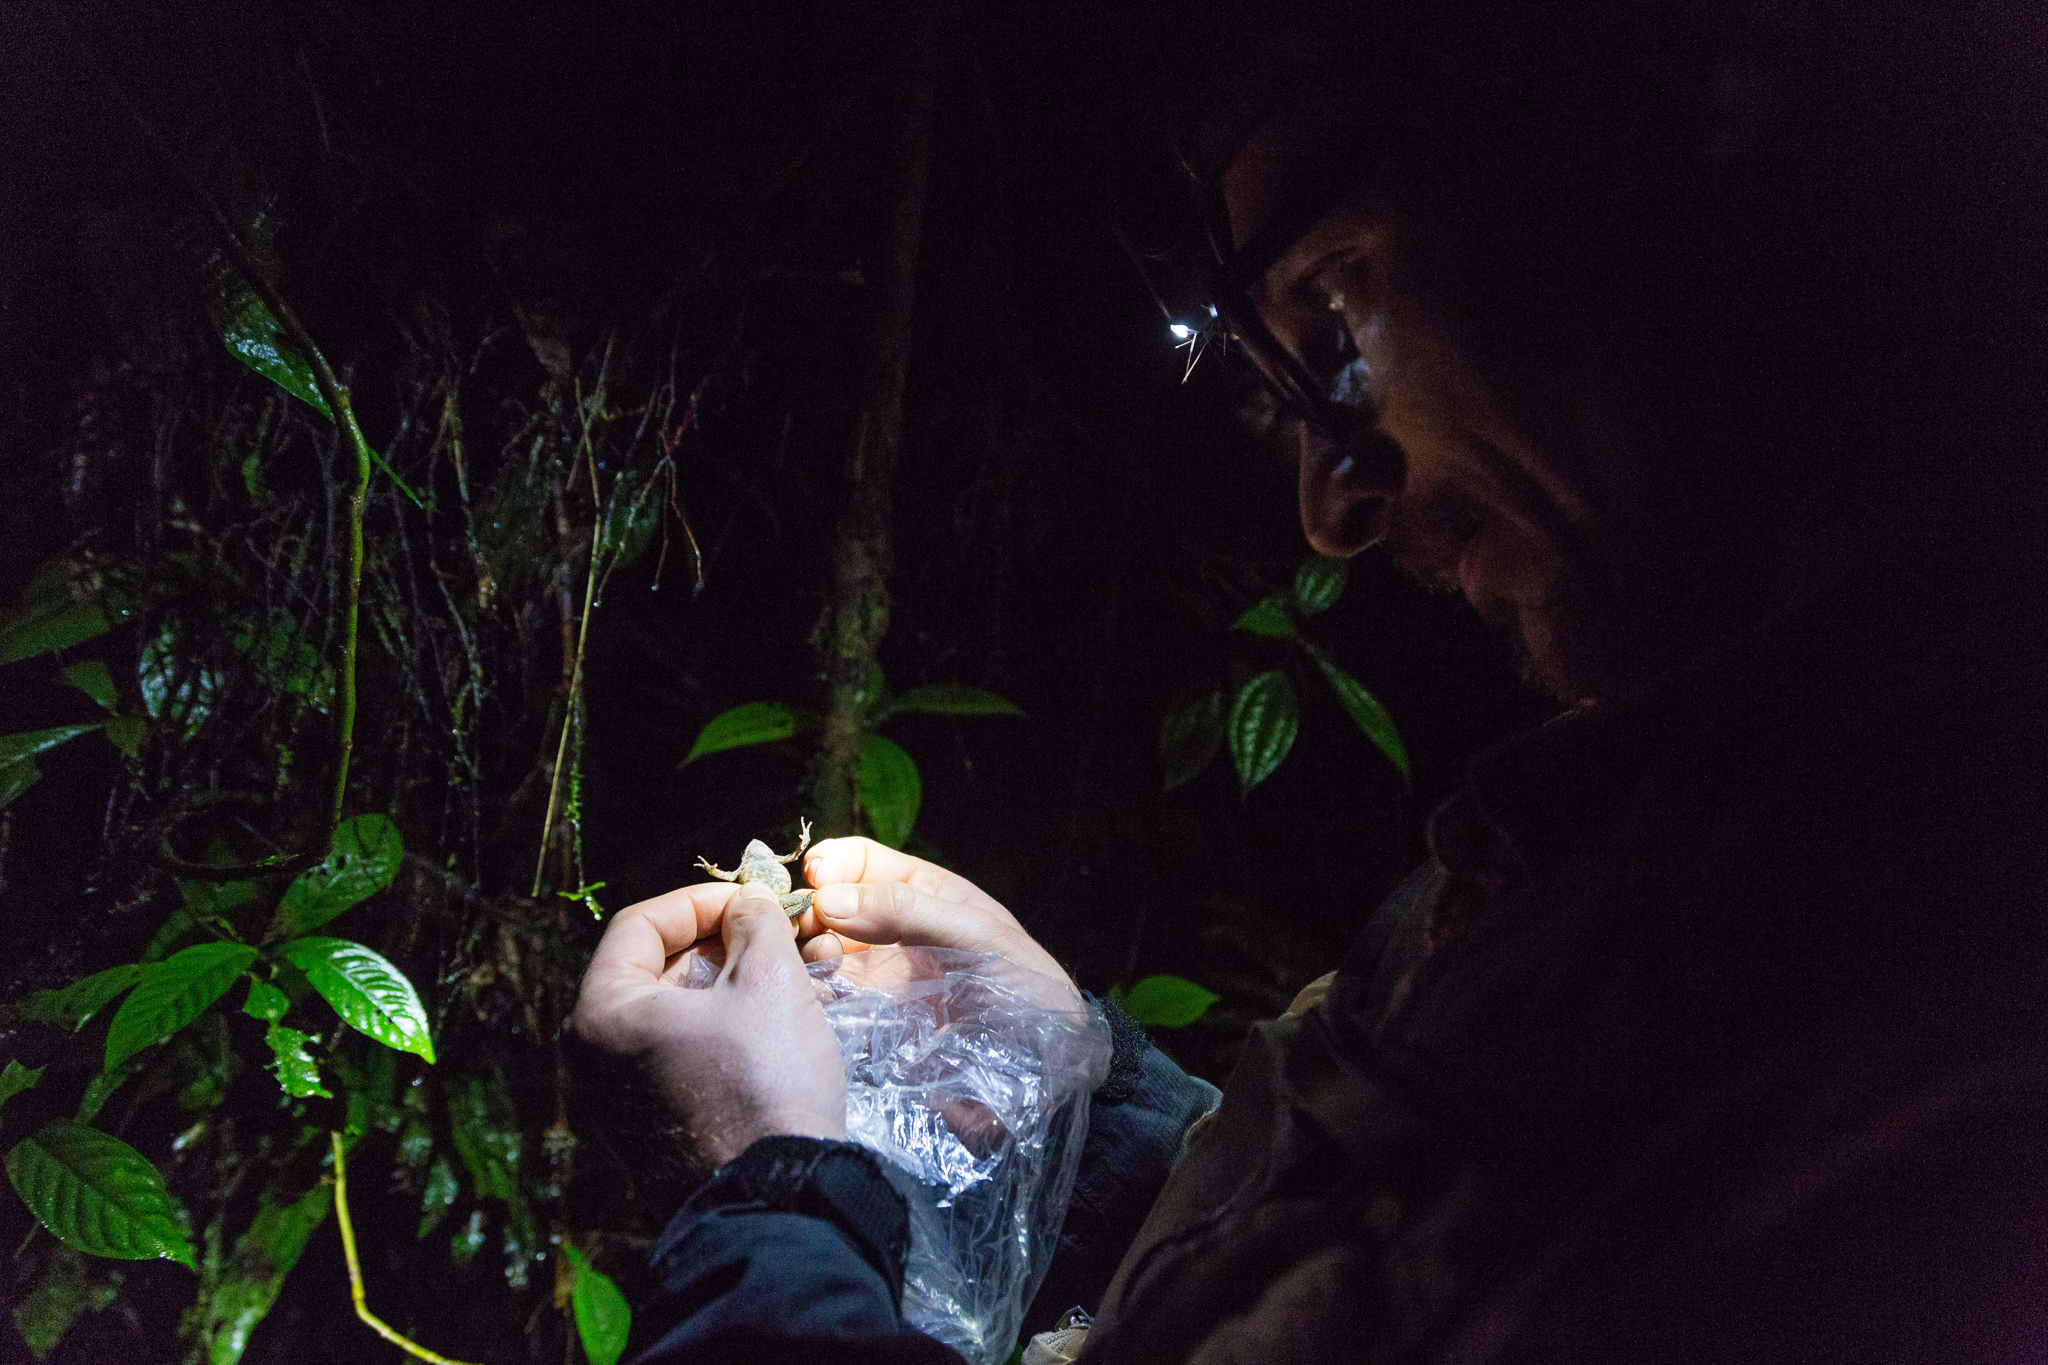 José Padial examines a toad of the genus Rhinella in search of taxonomic clues. Photo by Andy Isaacson